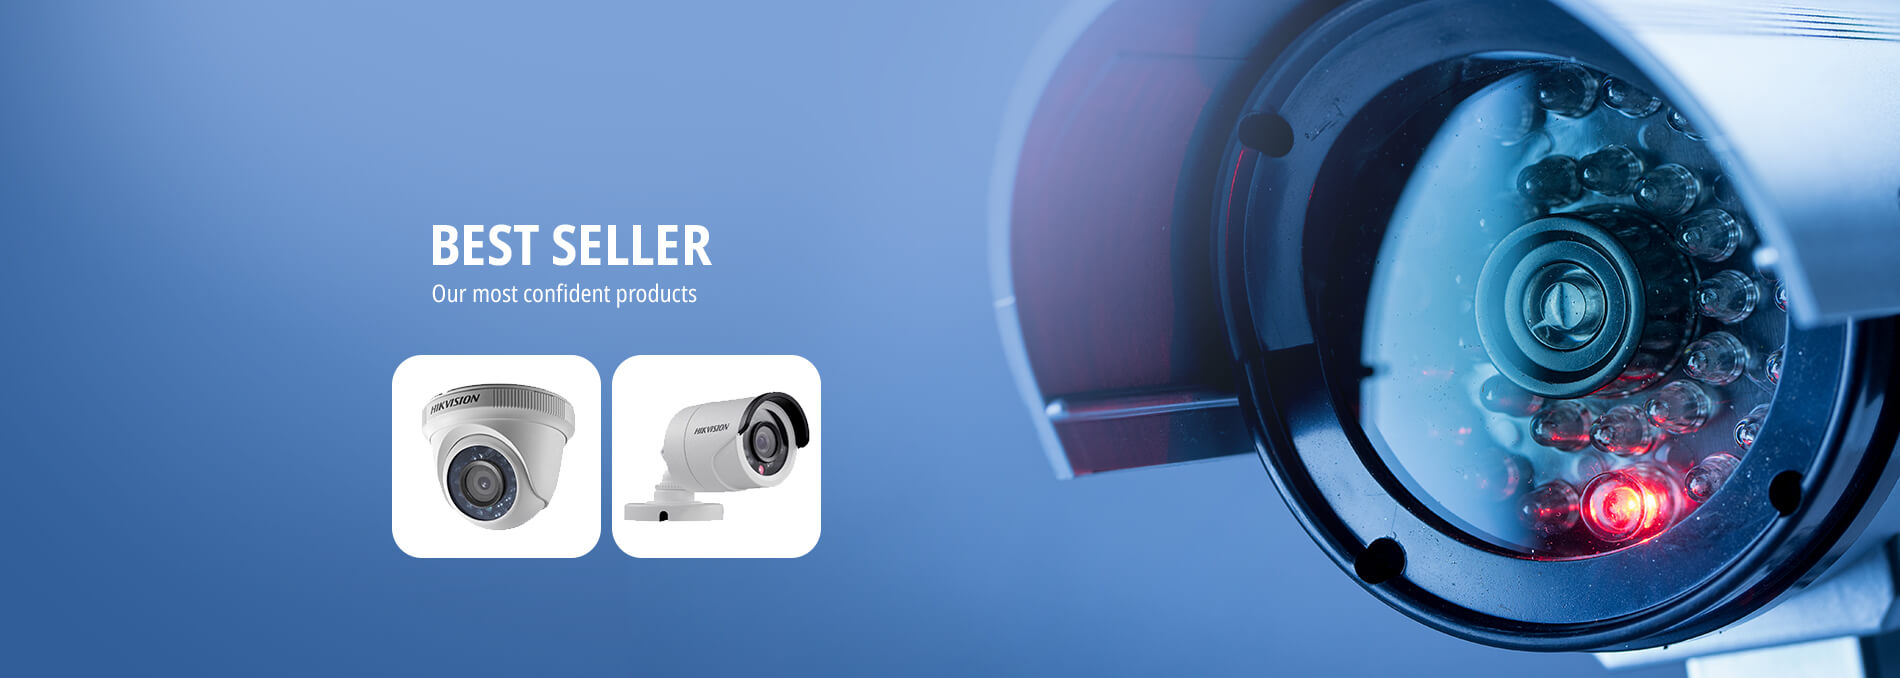 Security CCTV Camera with mobile access and full hd format image